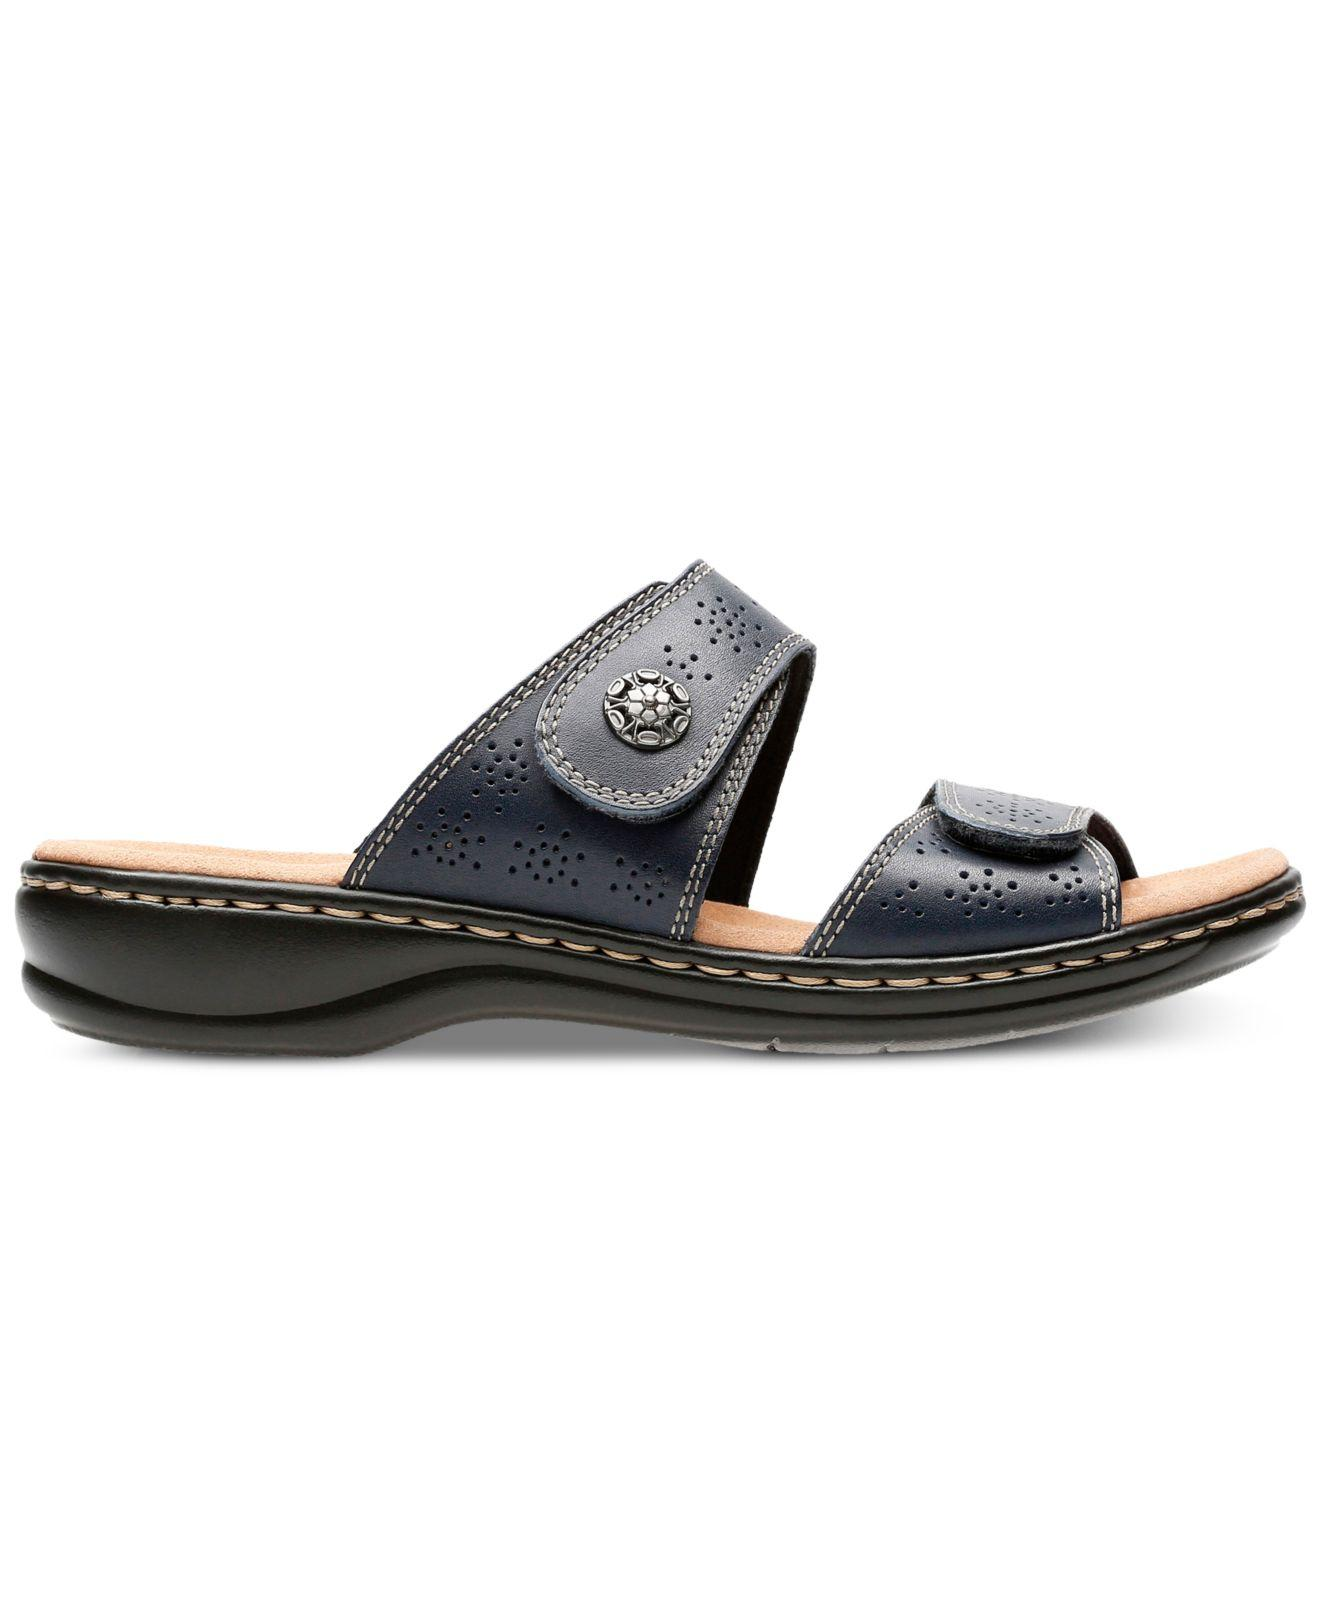 8ee0558513f3 Lyst - Clarks Leisa Lacole Flat Sandals in Blue